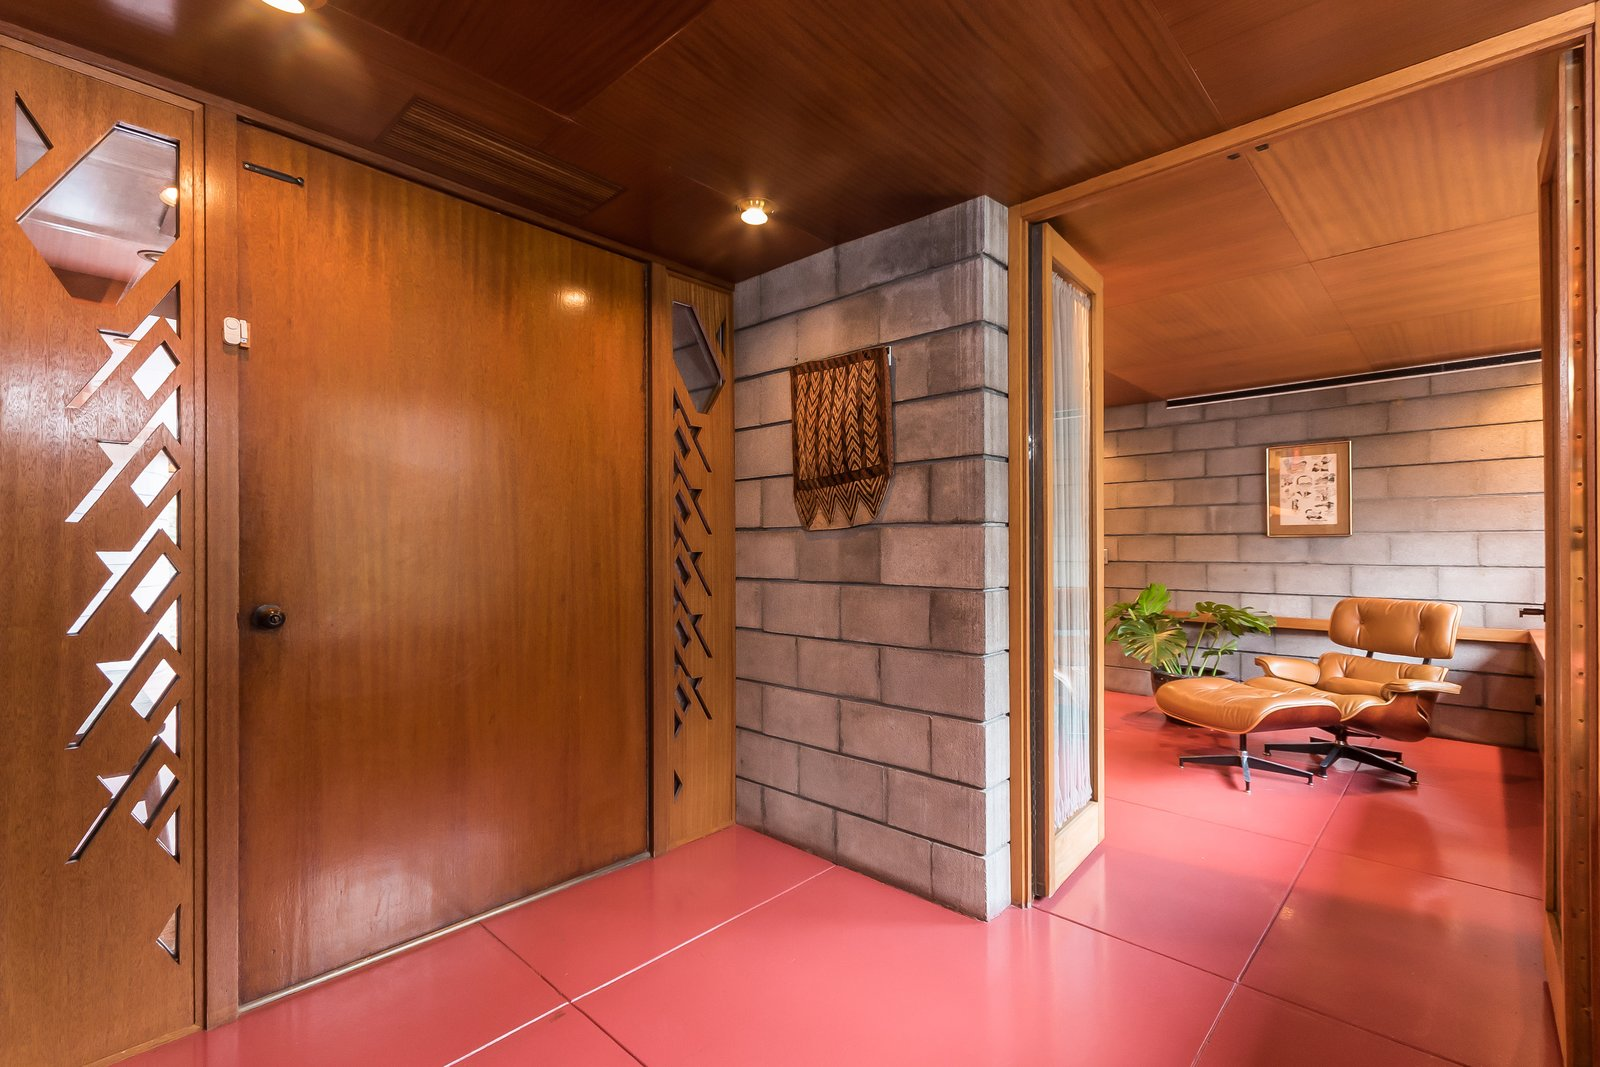 The interior of the home is almost completely lined with mahogany, along with sections of concrete blocks. Wright's design called for different cuts of wood to be placed together, which creates a rich layered effect. Frank Lloyd Wright's Last Major Residential Masterpiece Could Be Yours for $8 Million - Photo 2 of 11